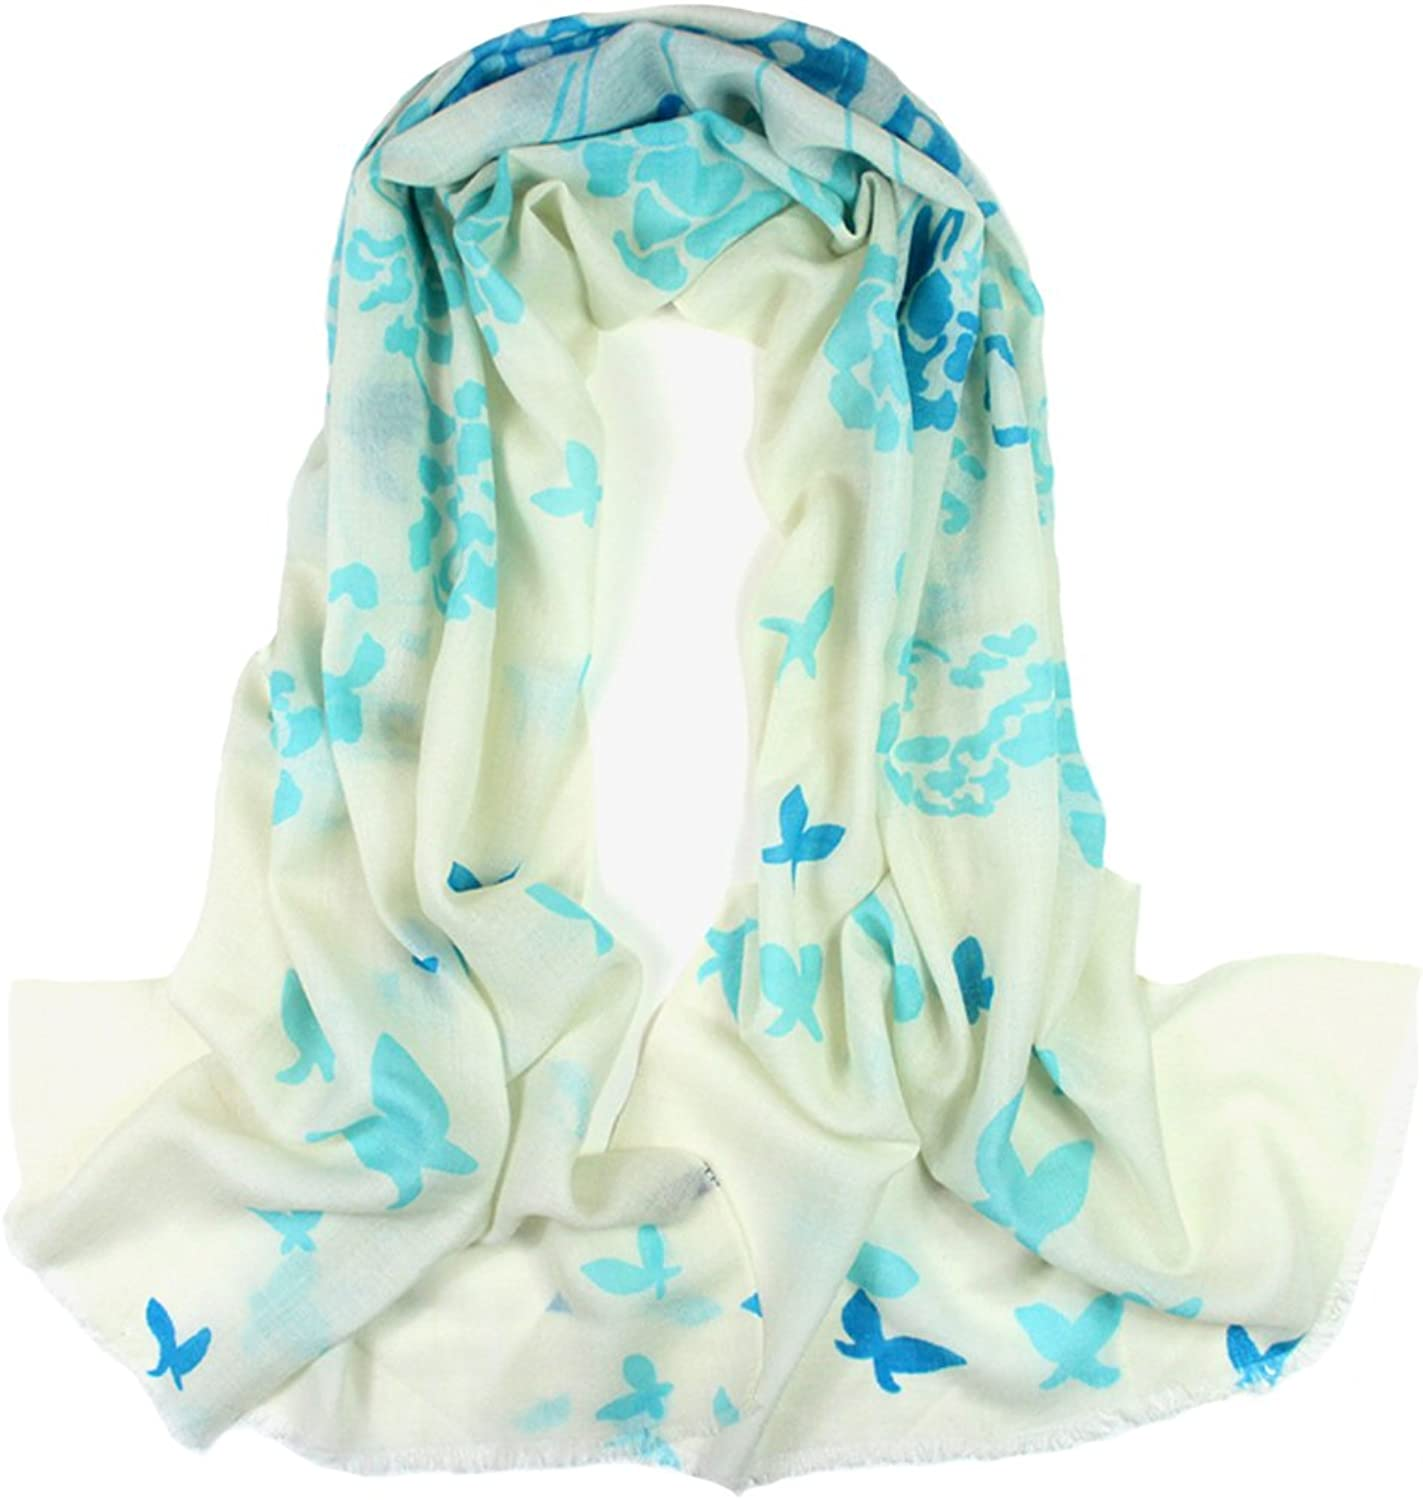 Dahlia Women's 100% Merino Wool Pashmina Scarf  Butterfly and Flower